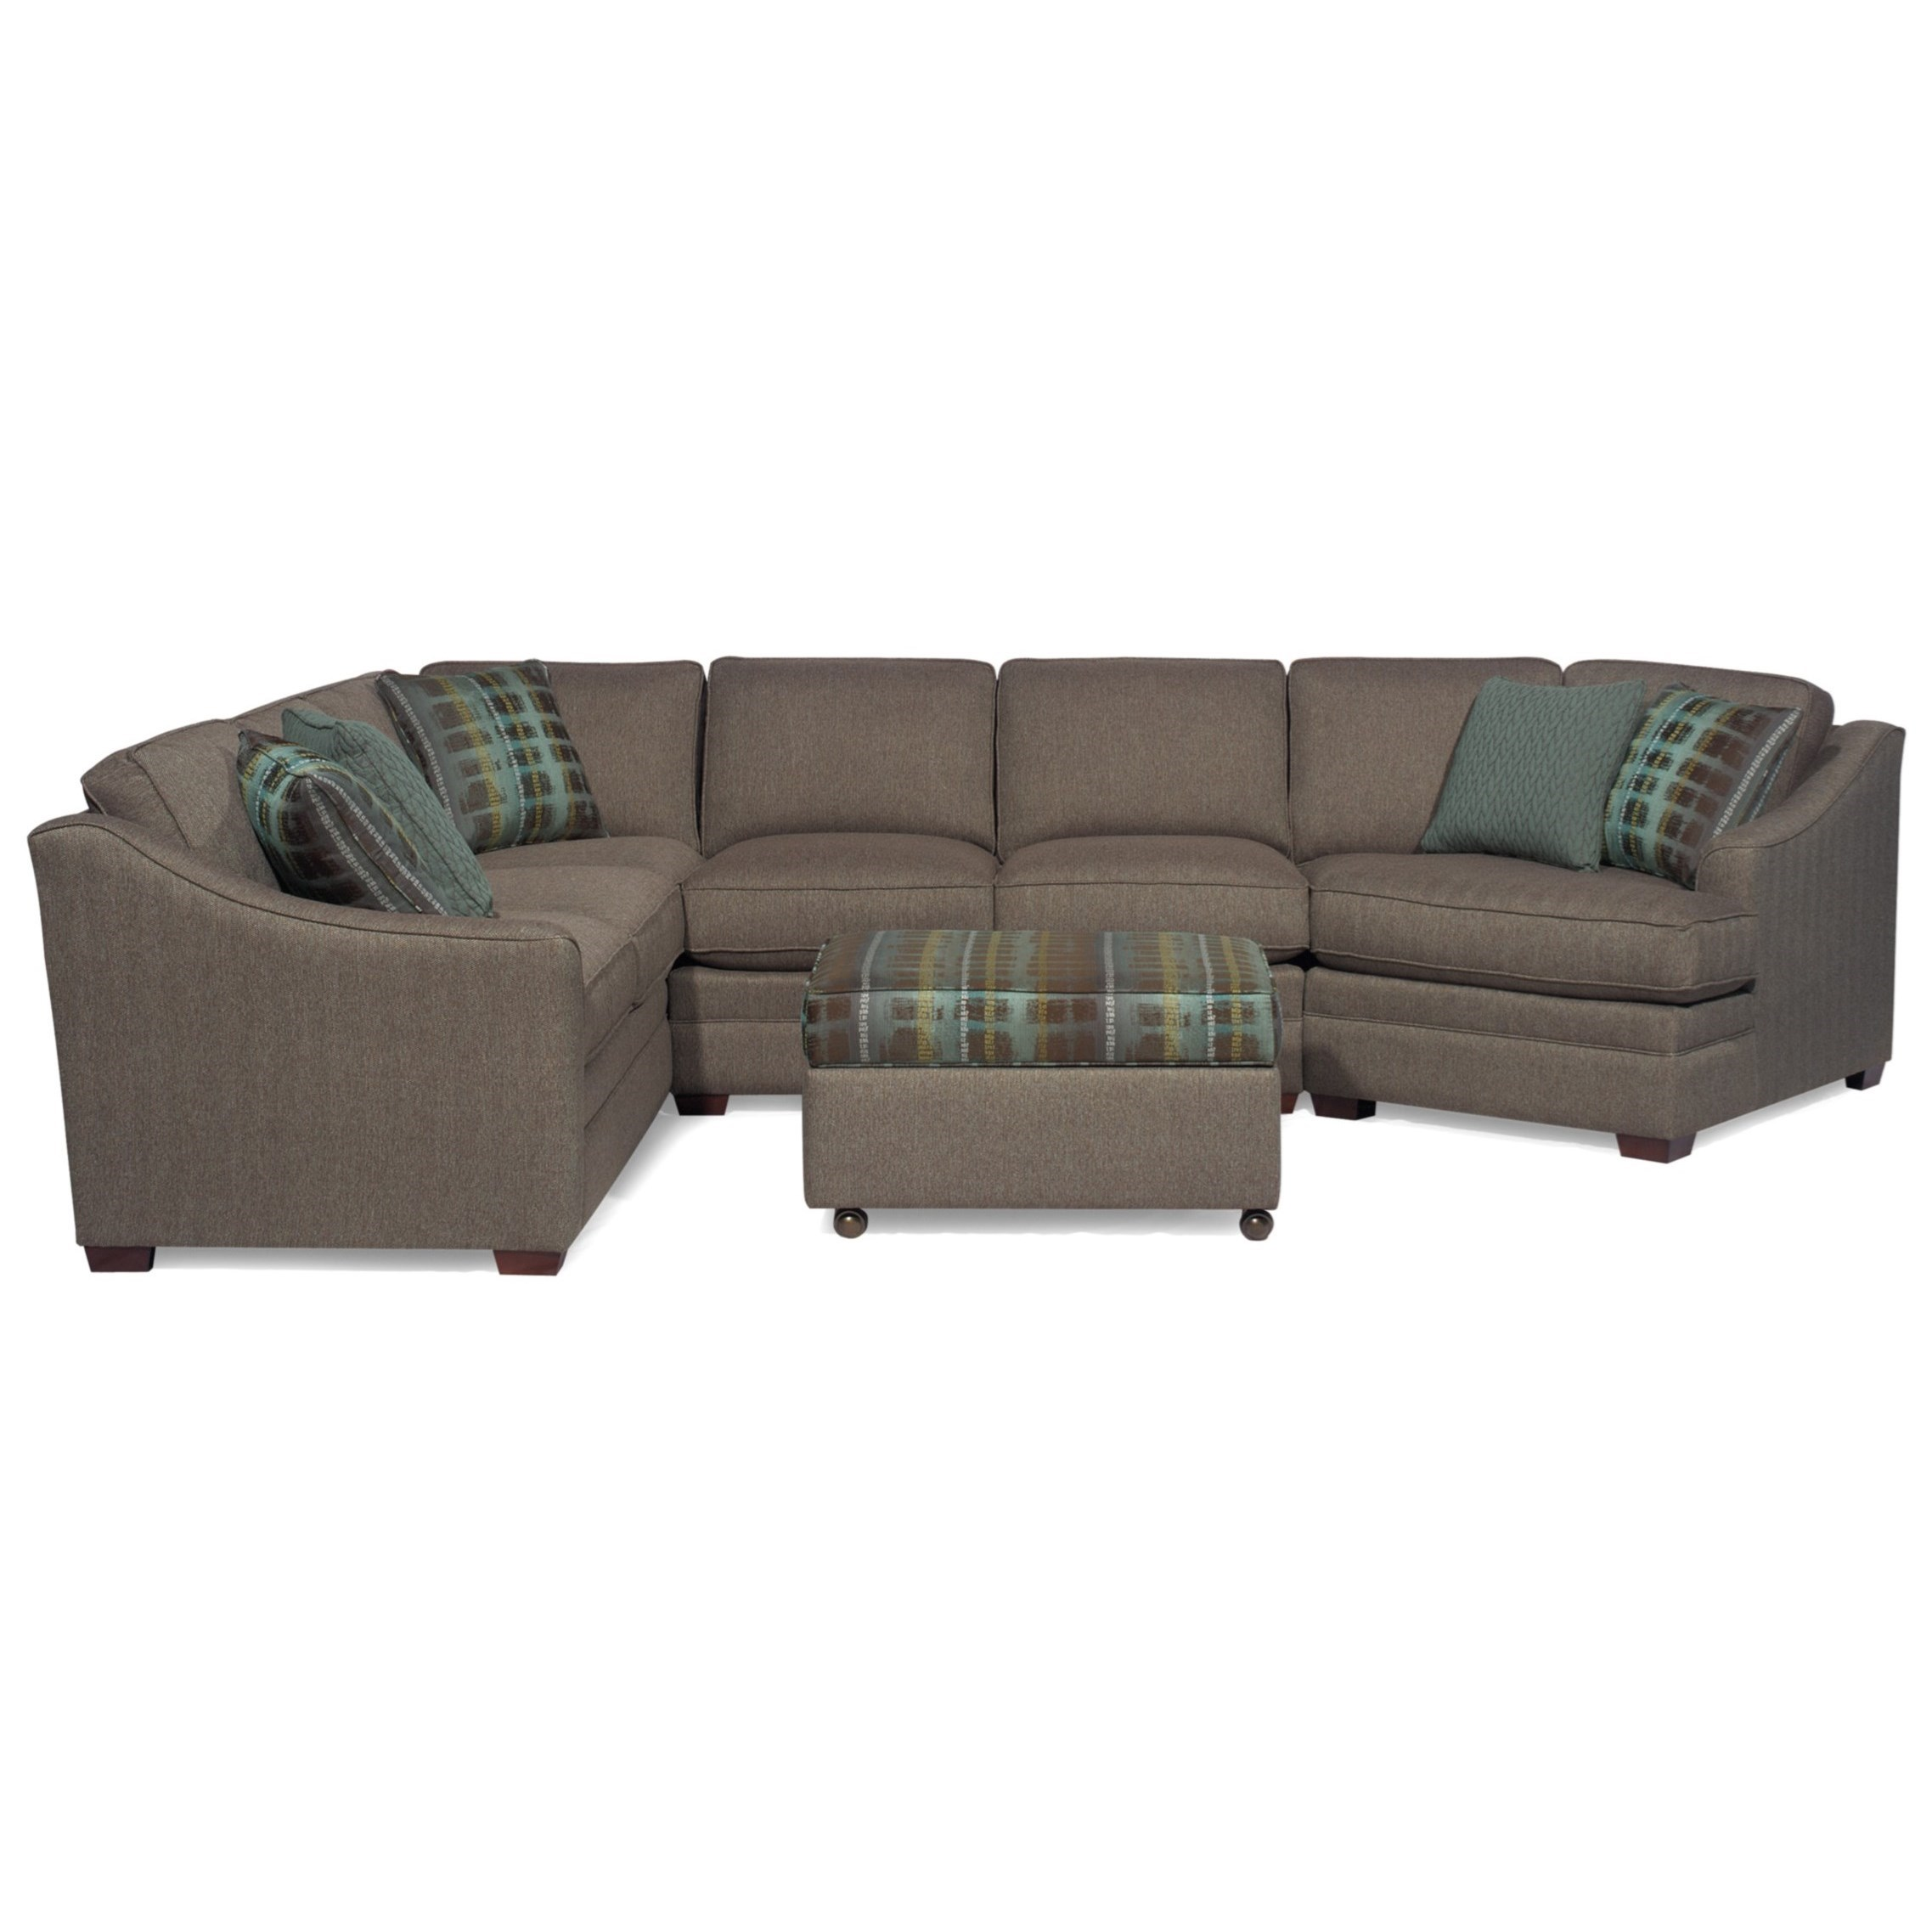 Customizable 3 Piece Sectional With RAF Cuddler By